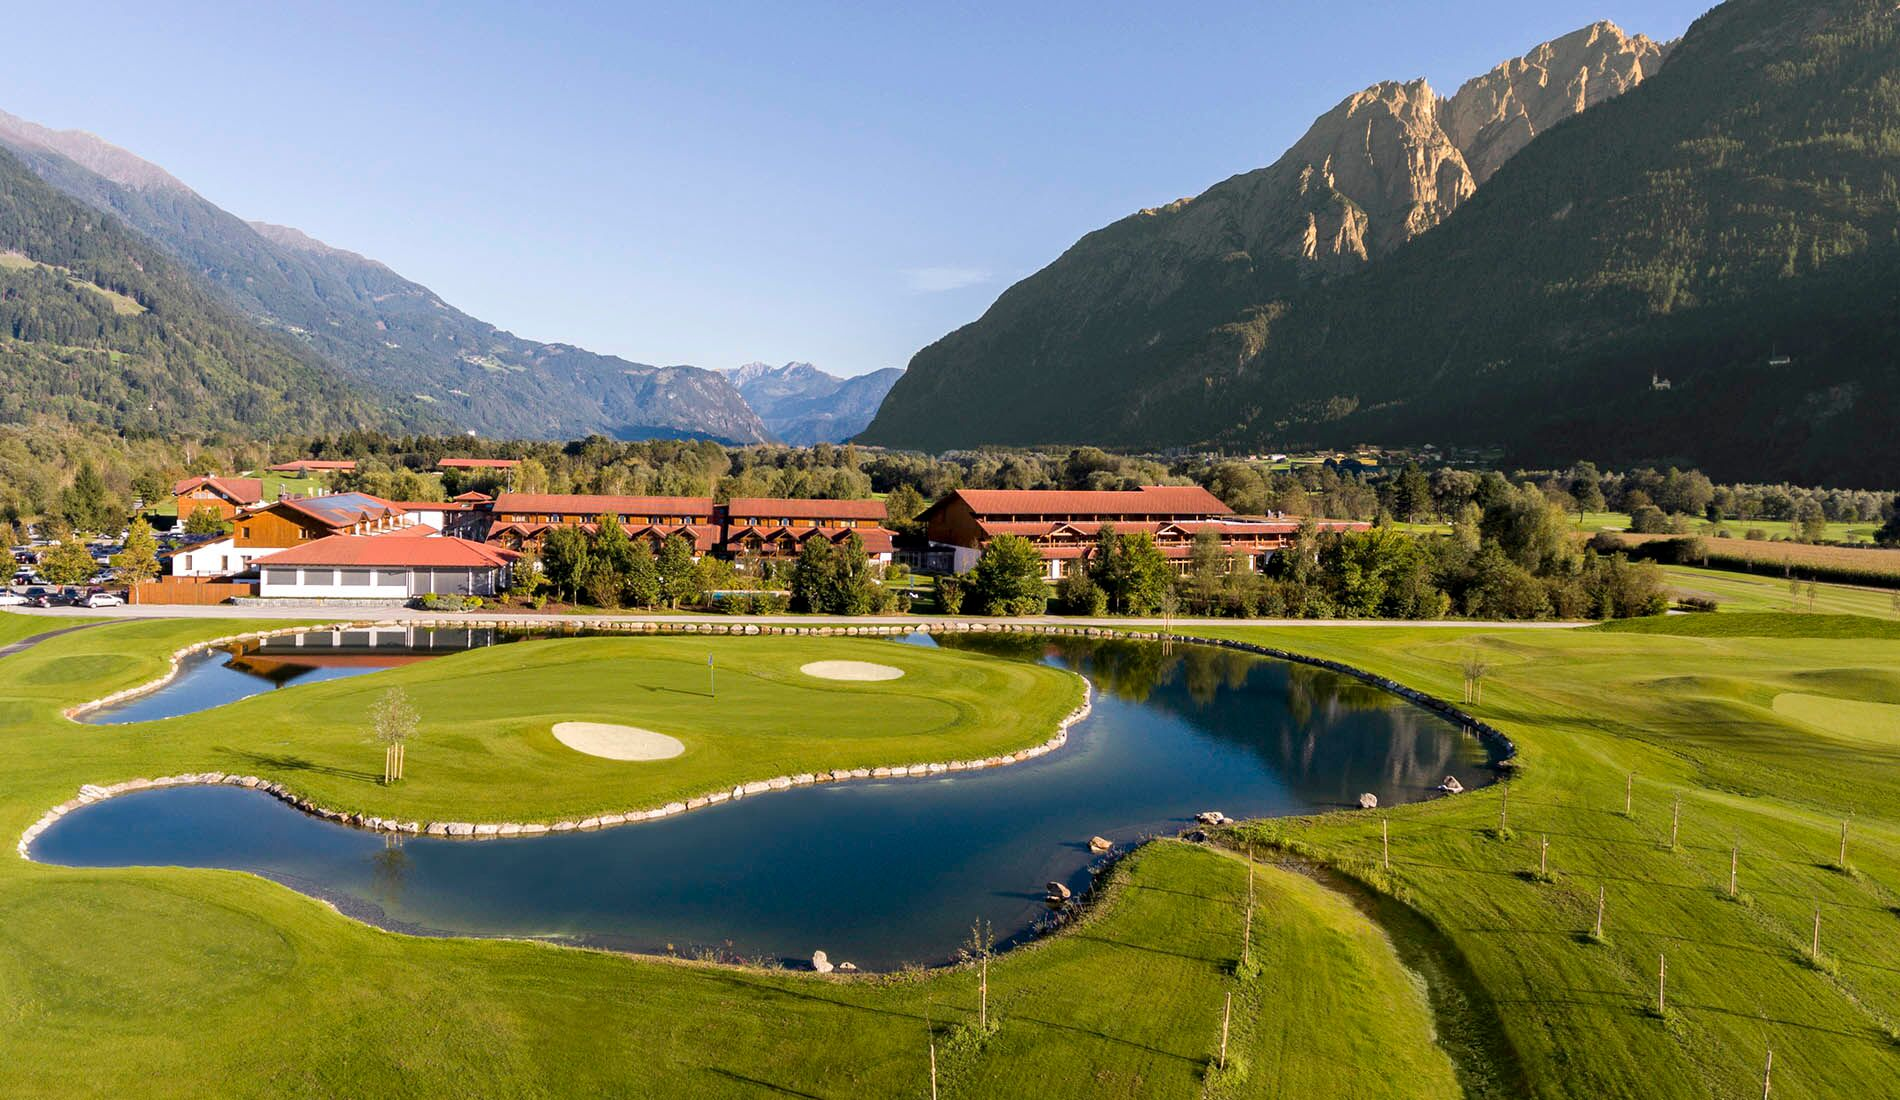 Dolomitengolf Hotel & Spa